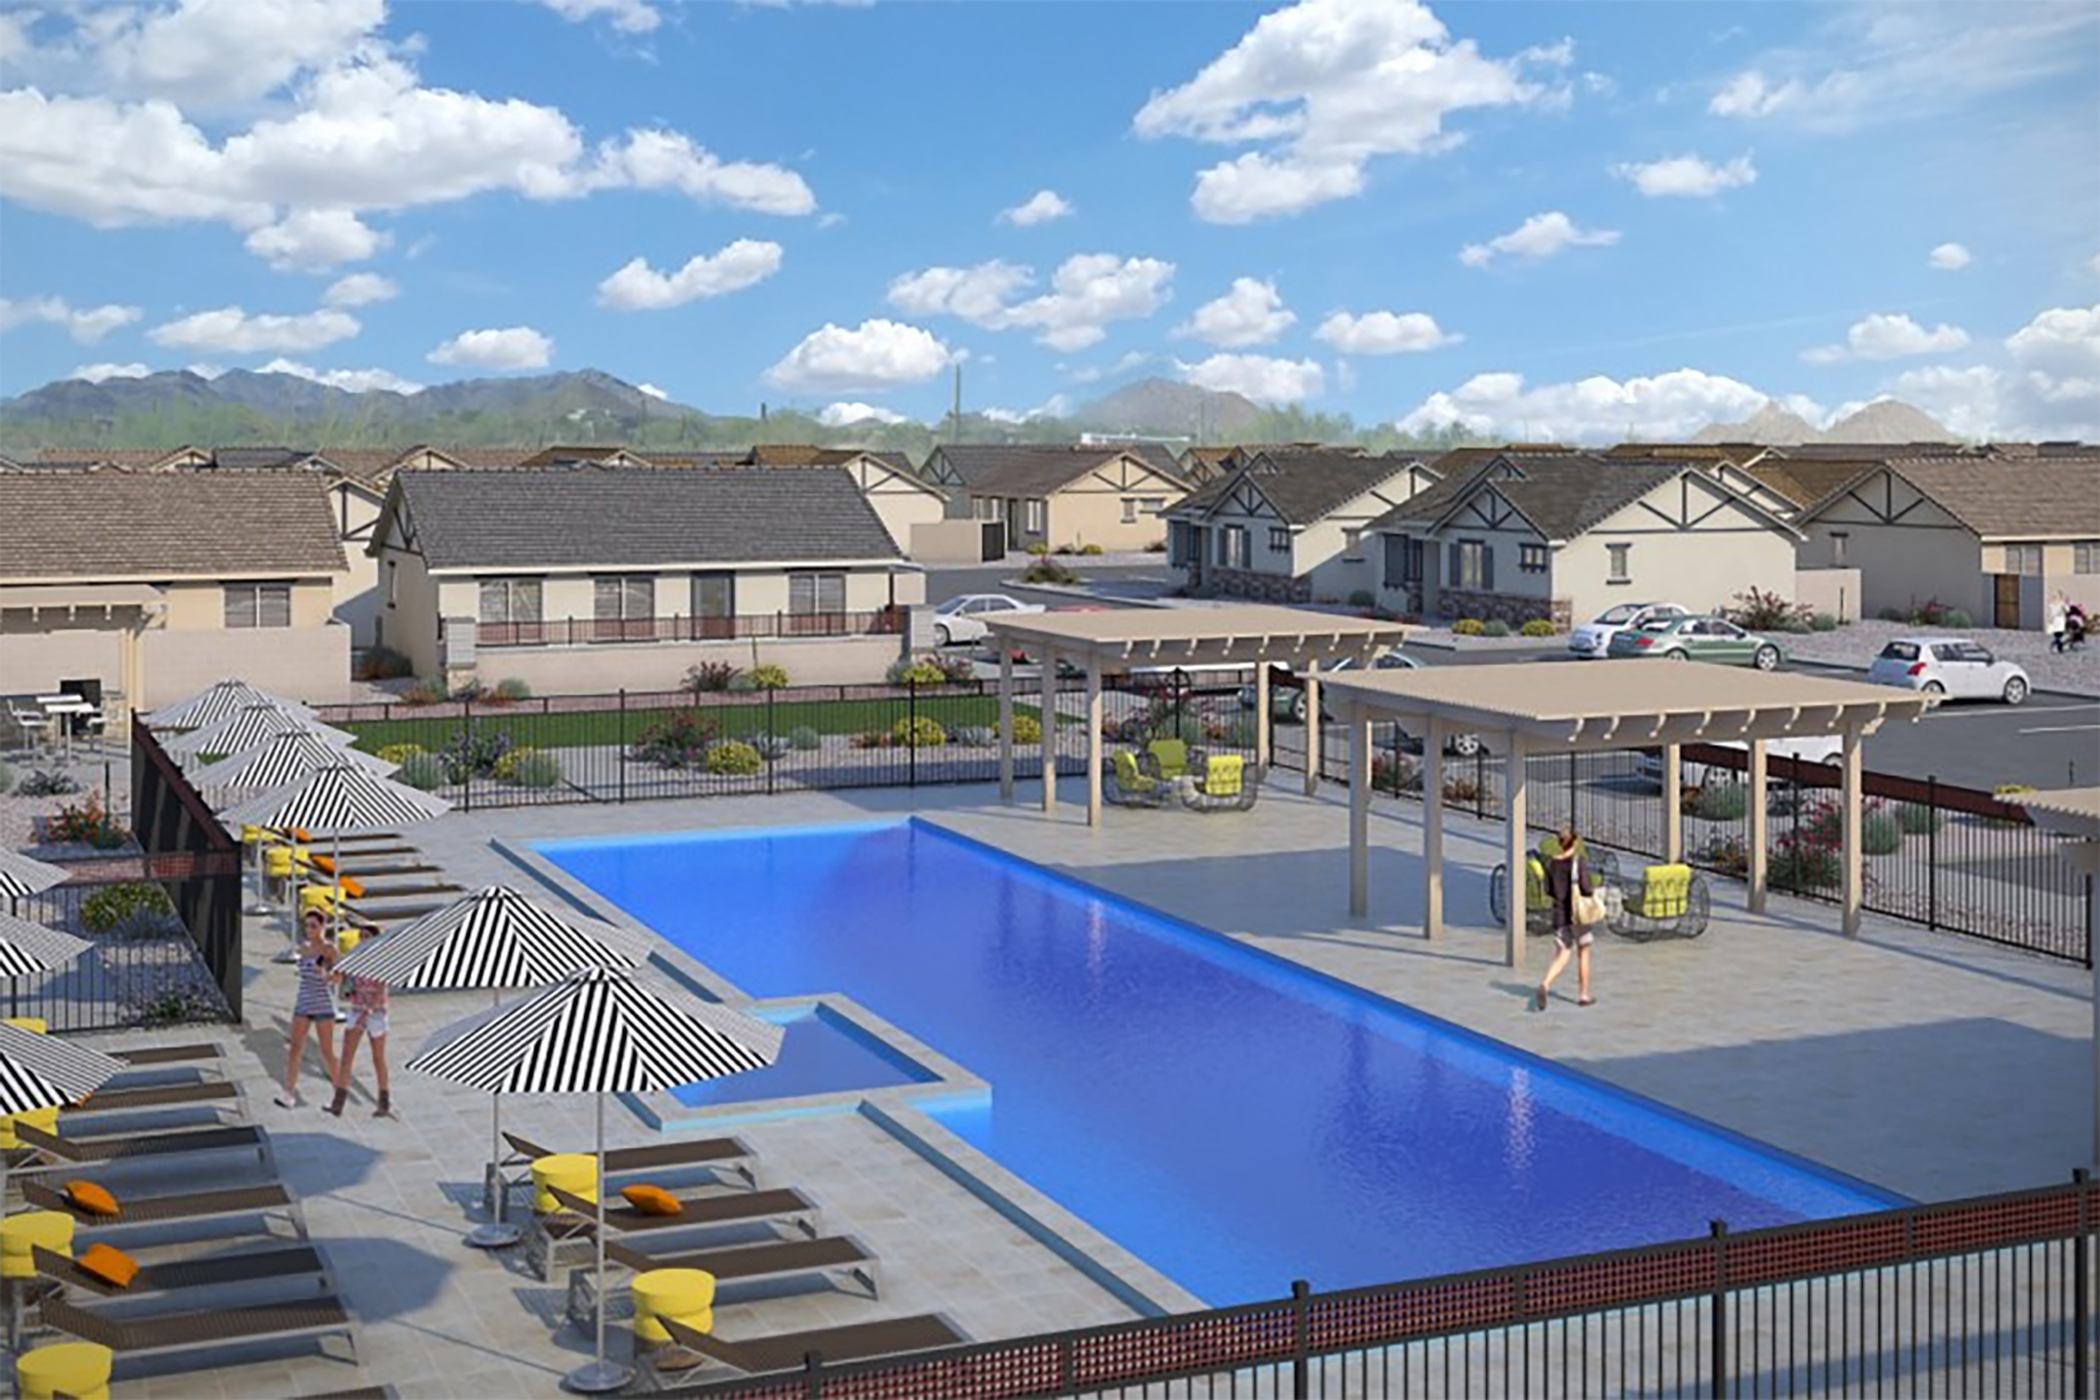 Empire Group is building a project similar to Village at Camelback Park called Village at Pebble Creek in Goodyear. (Empire Group of Companies)